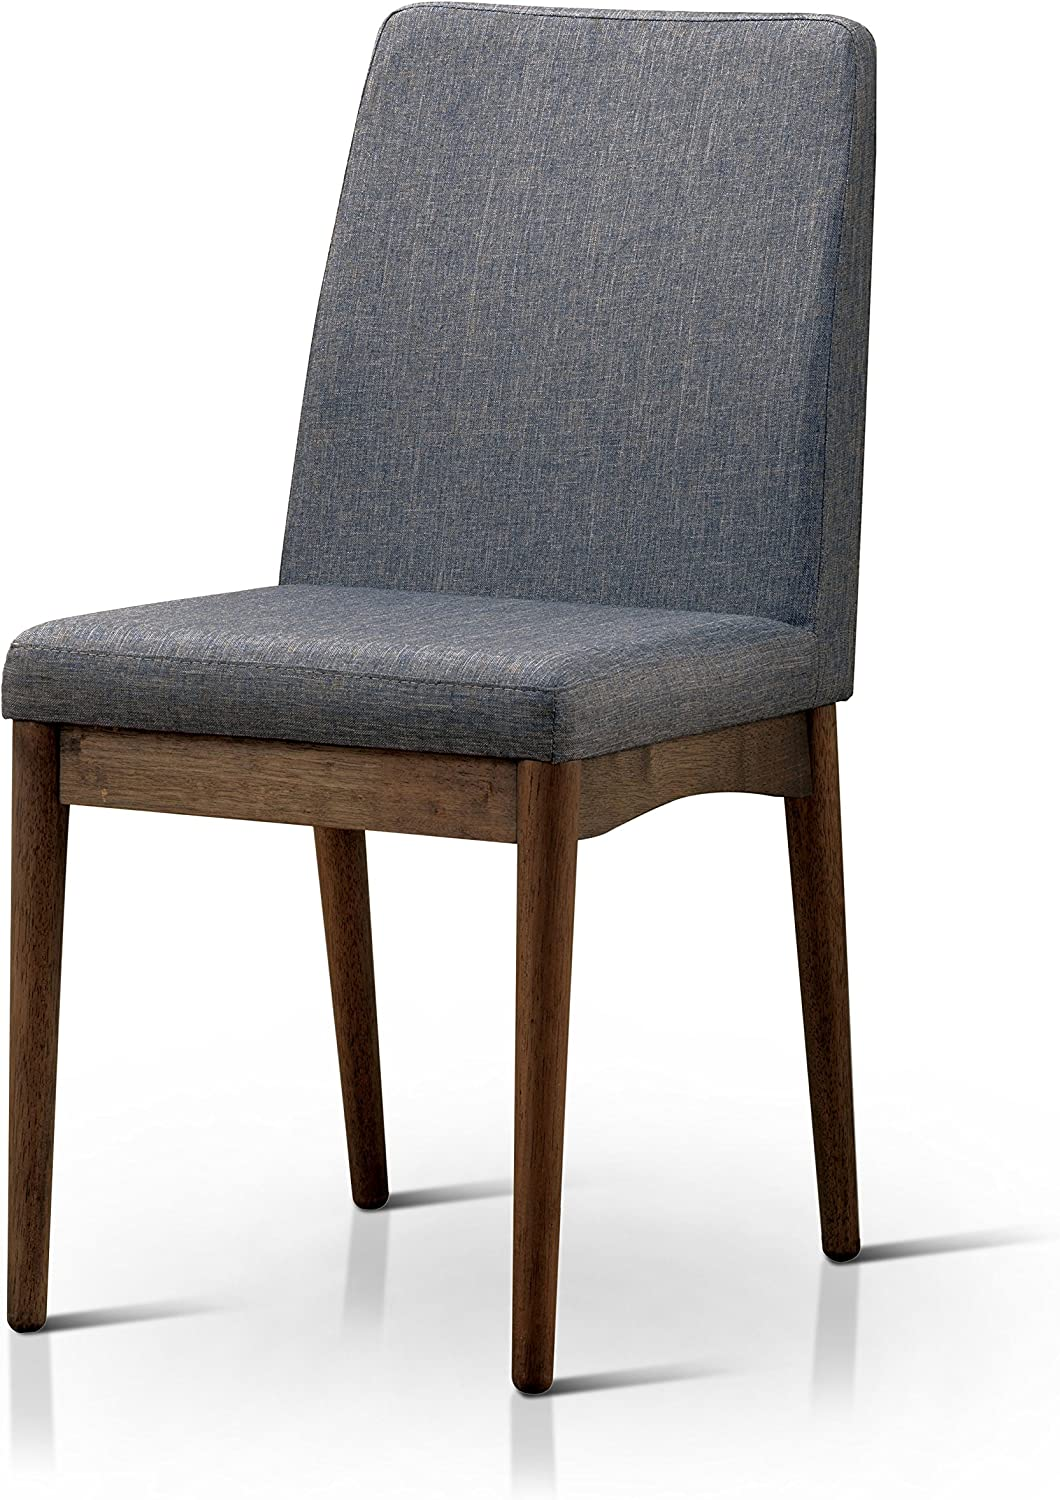 HOMES: Inside + Out Velasco Natural Tone Valesco Modern Side Chair (Set of 2)